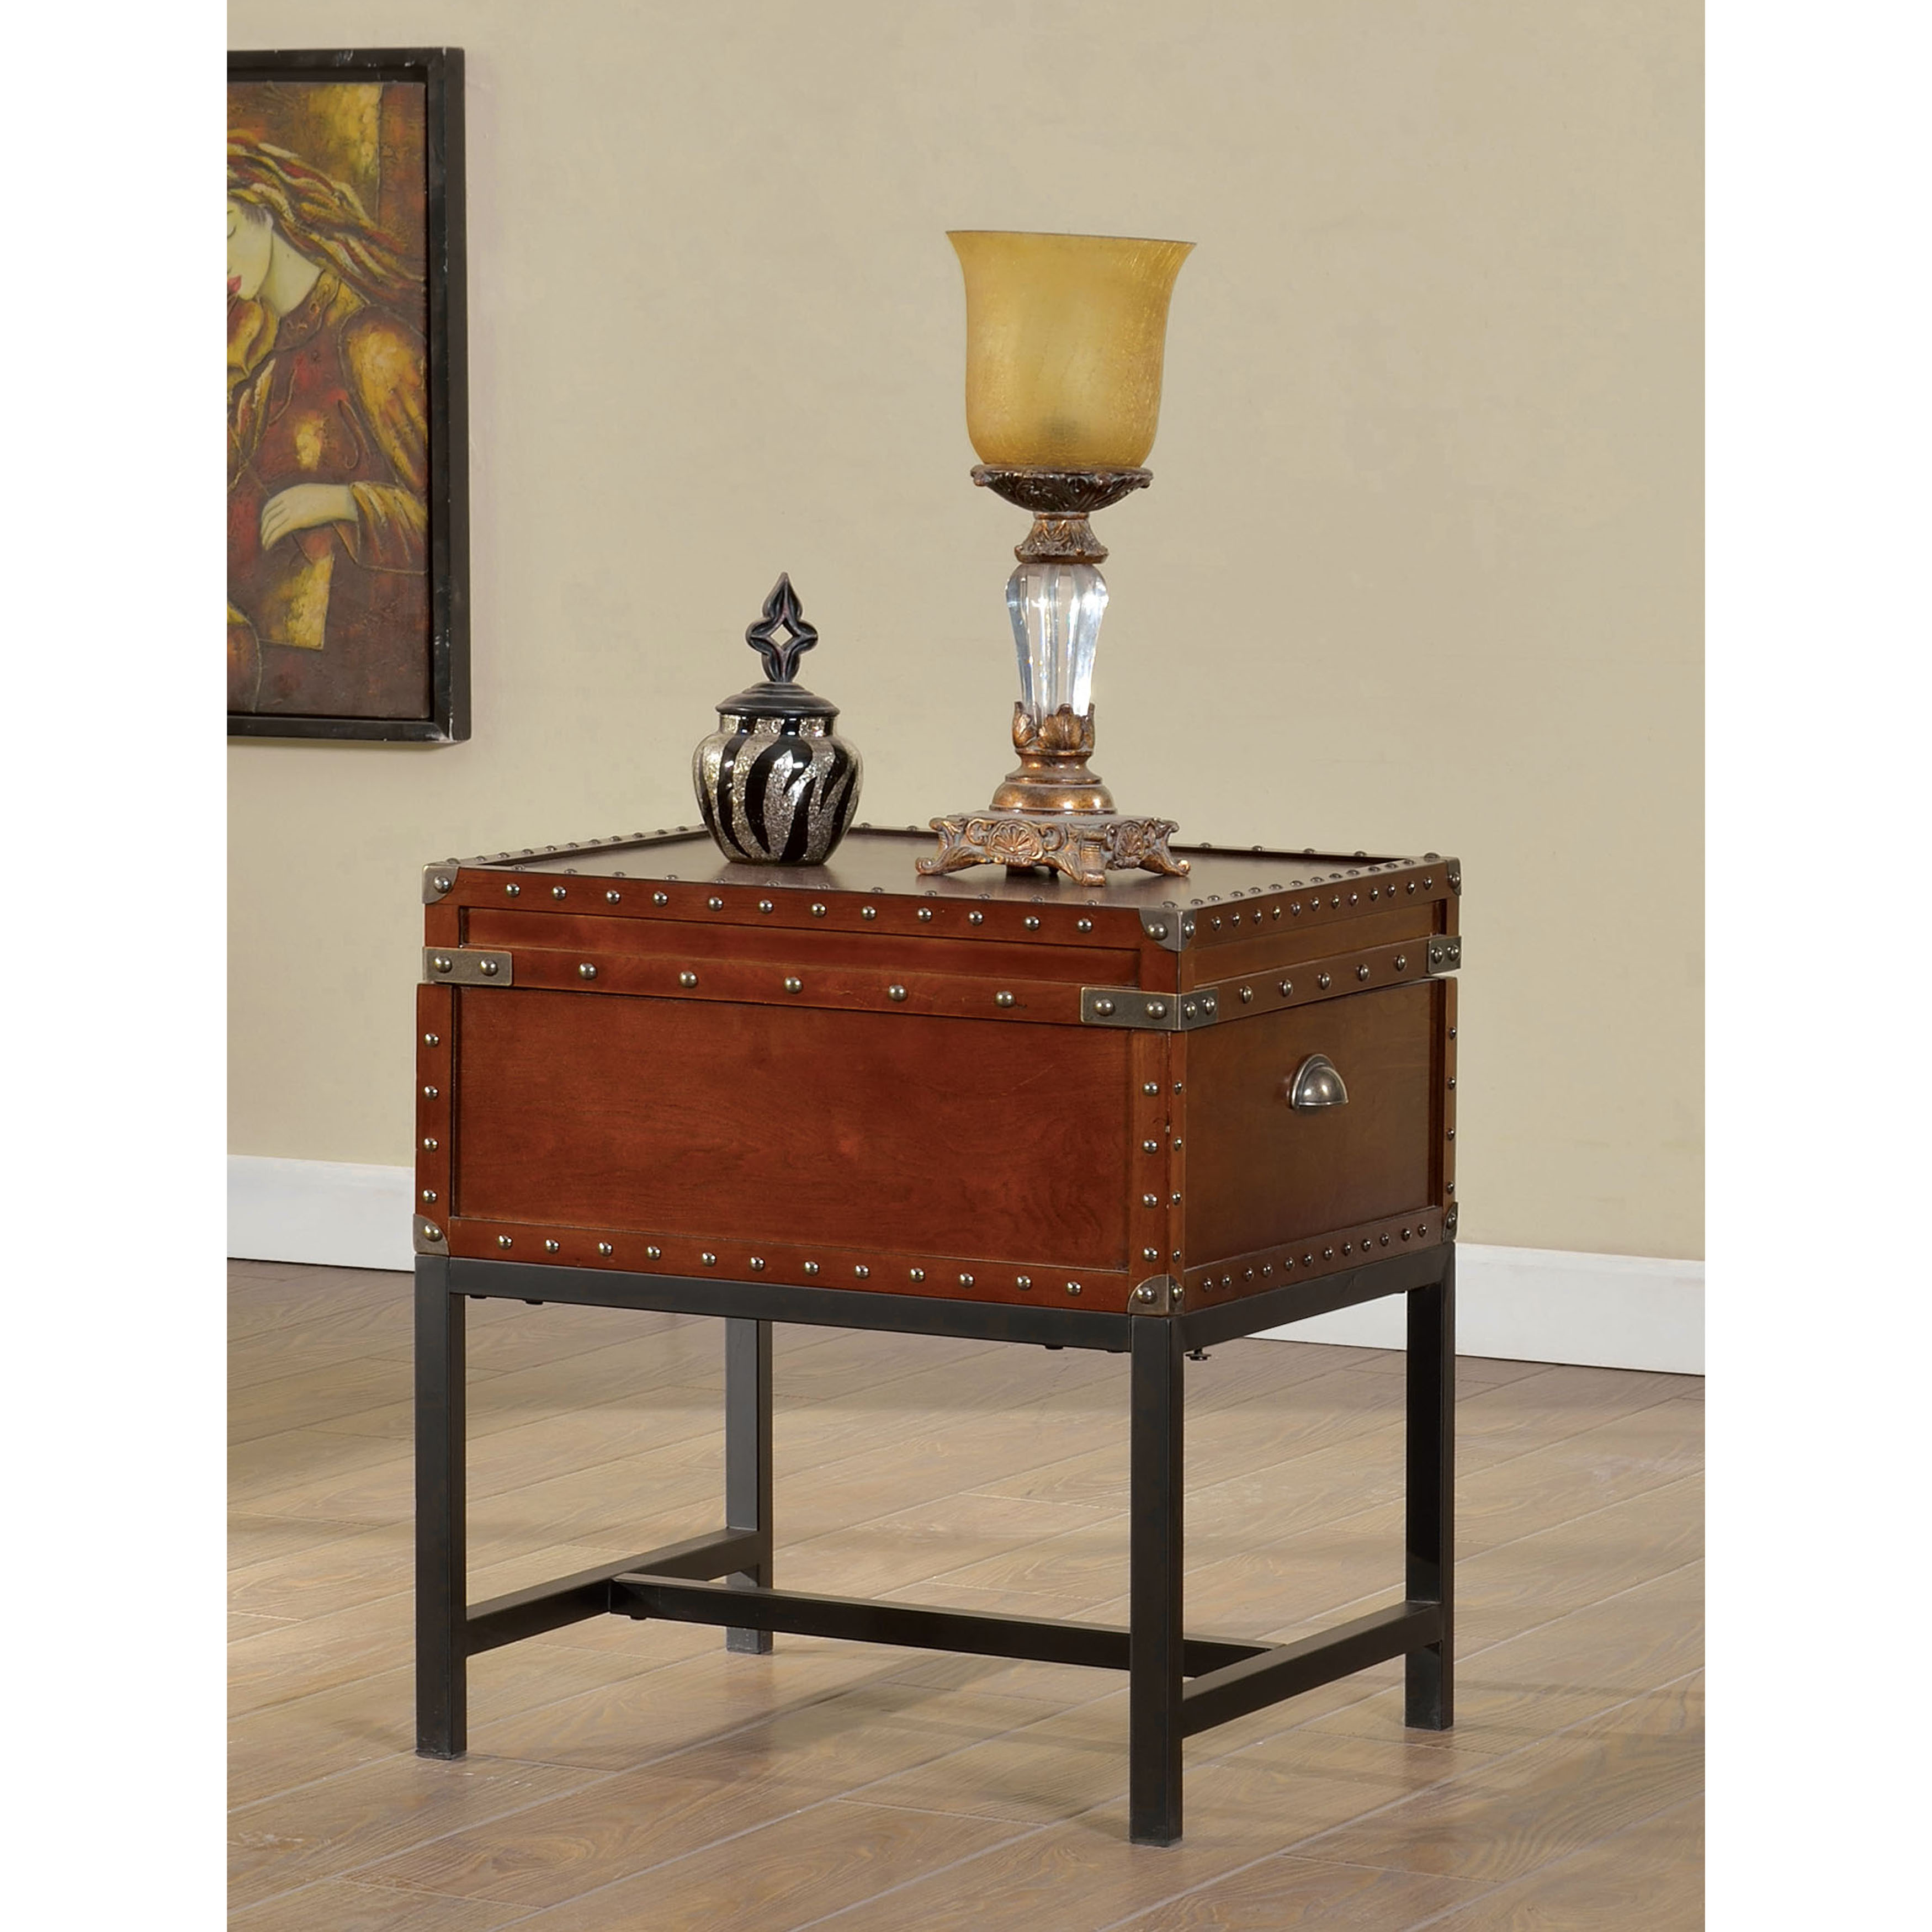 Furniture of America Cherry Reichel Trunk Style End Table